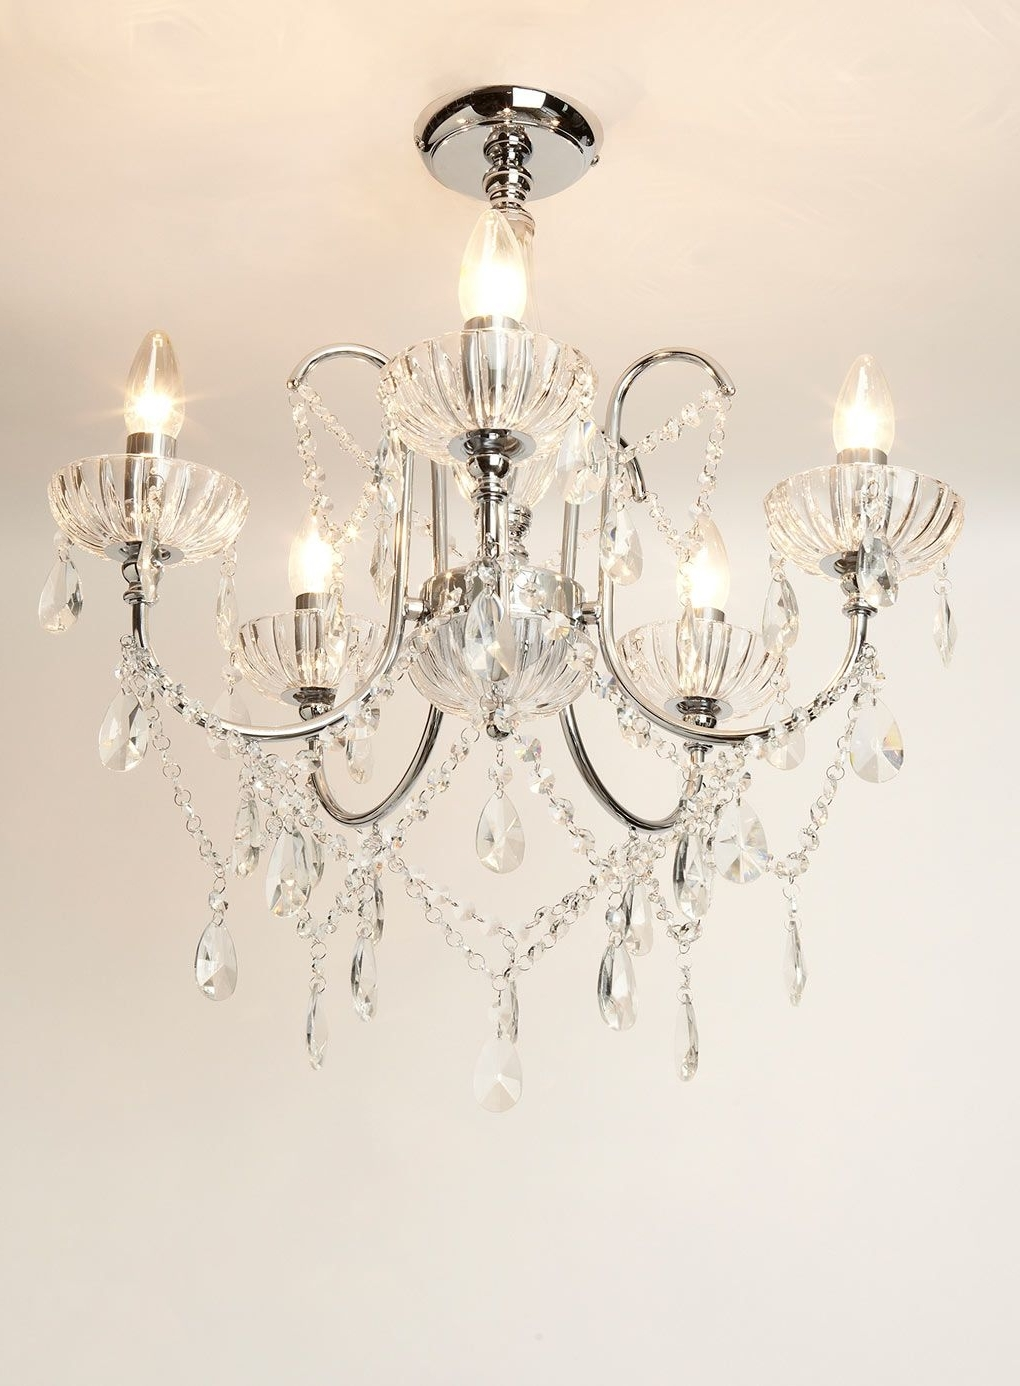 Newest Flush Fitting Chandeliers Pertaining To Sapparia 5 Light Flush Chandelier Bhs, £60 (Was £120), Living (View 16 of 20)